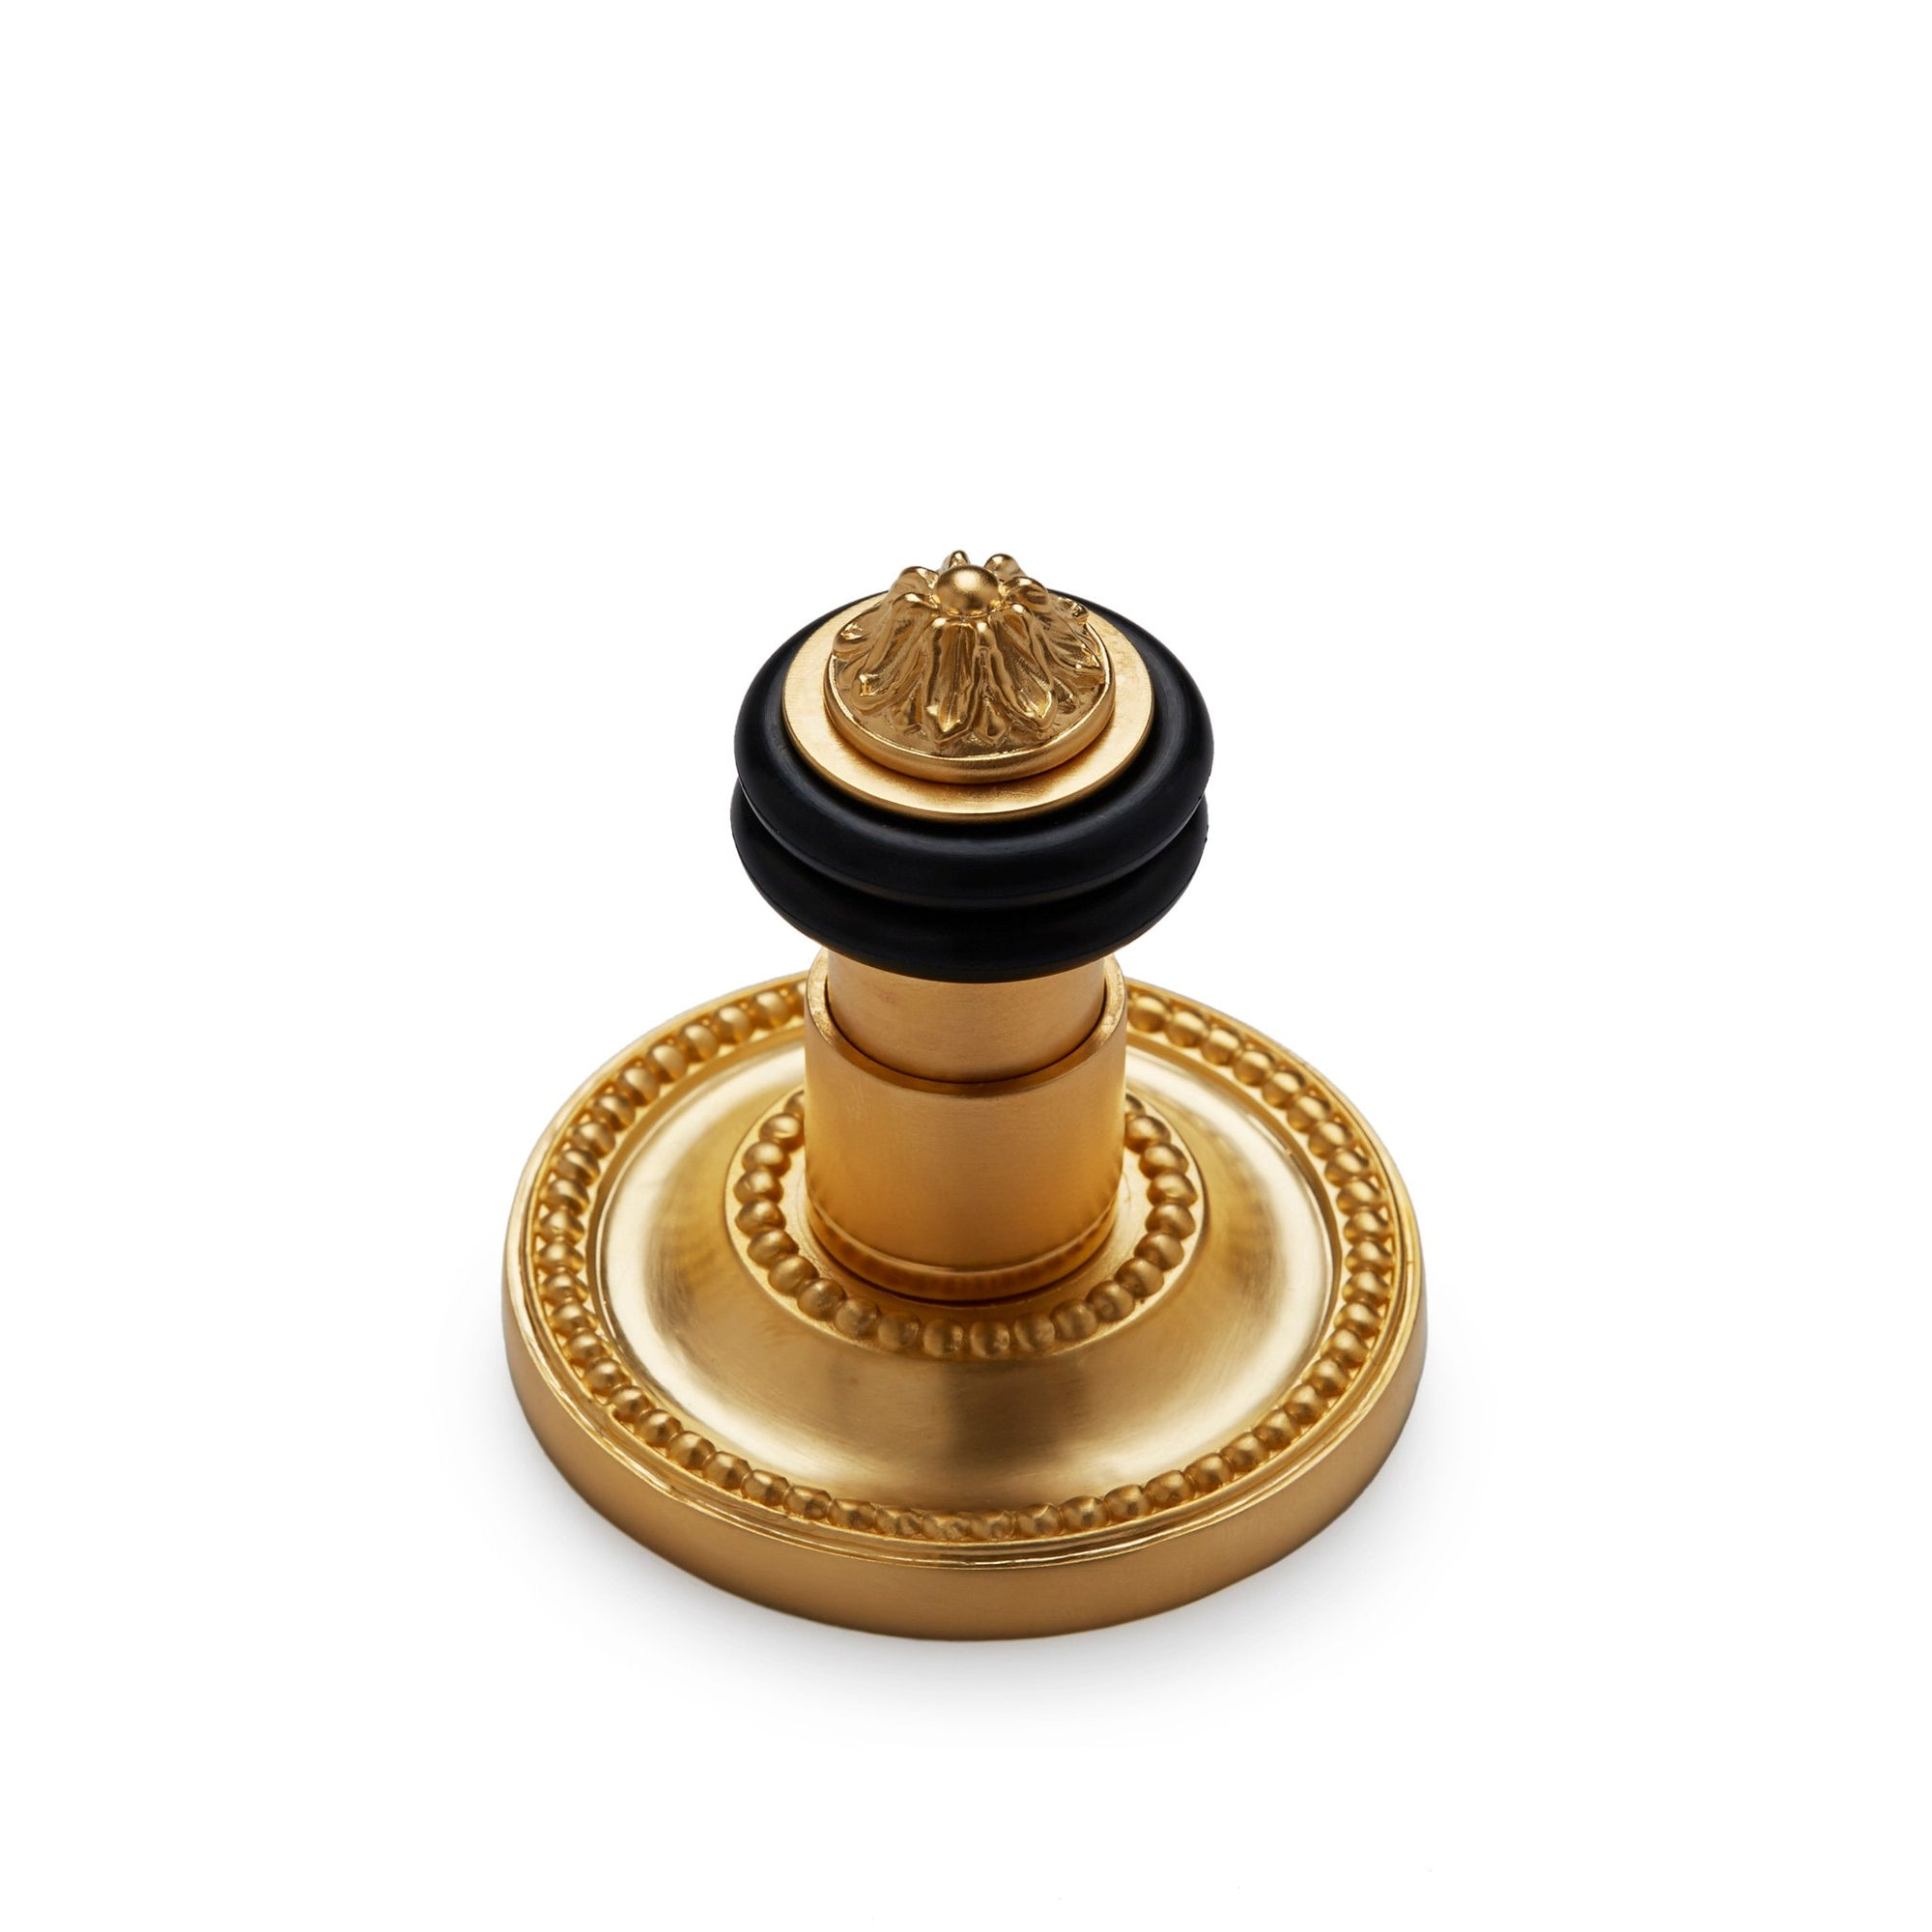 2919-CL-GP Sherle Wagner International Floor Mount Door Stop with Classical Back Plate in Gold Plate metal finish